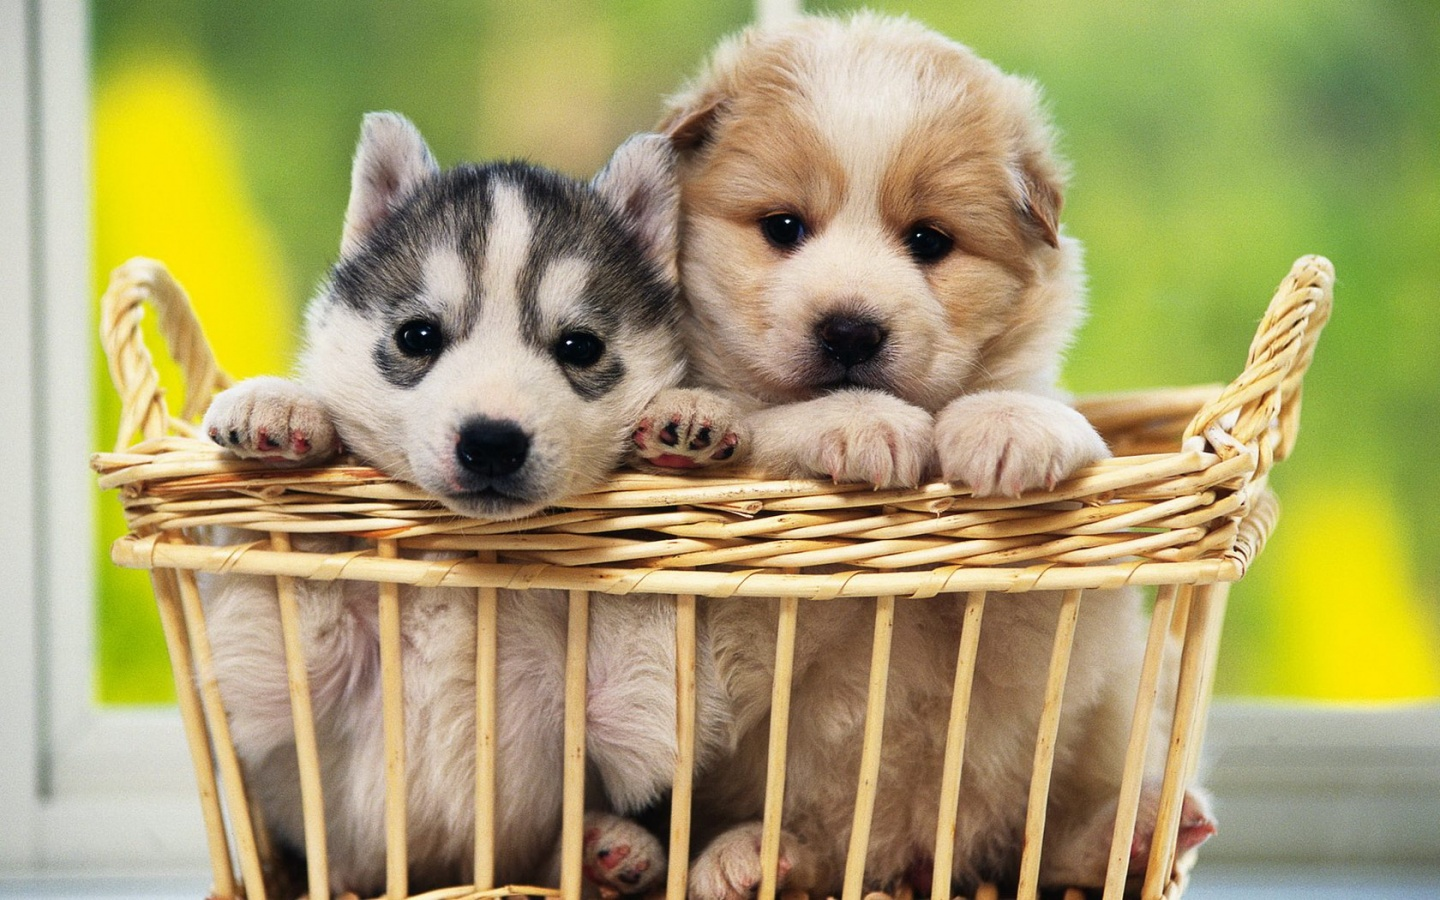 Cute dog pictures free stock photos download (2,308 free stock.